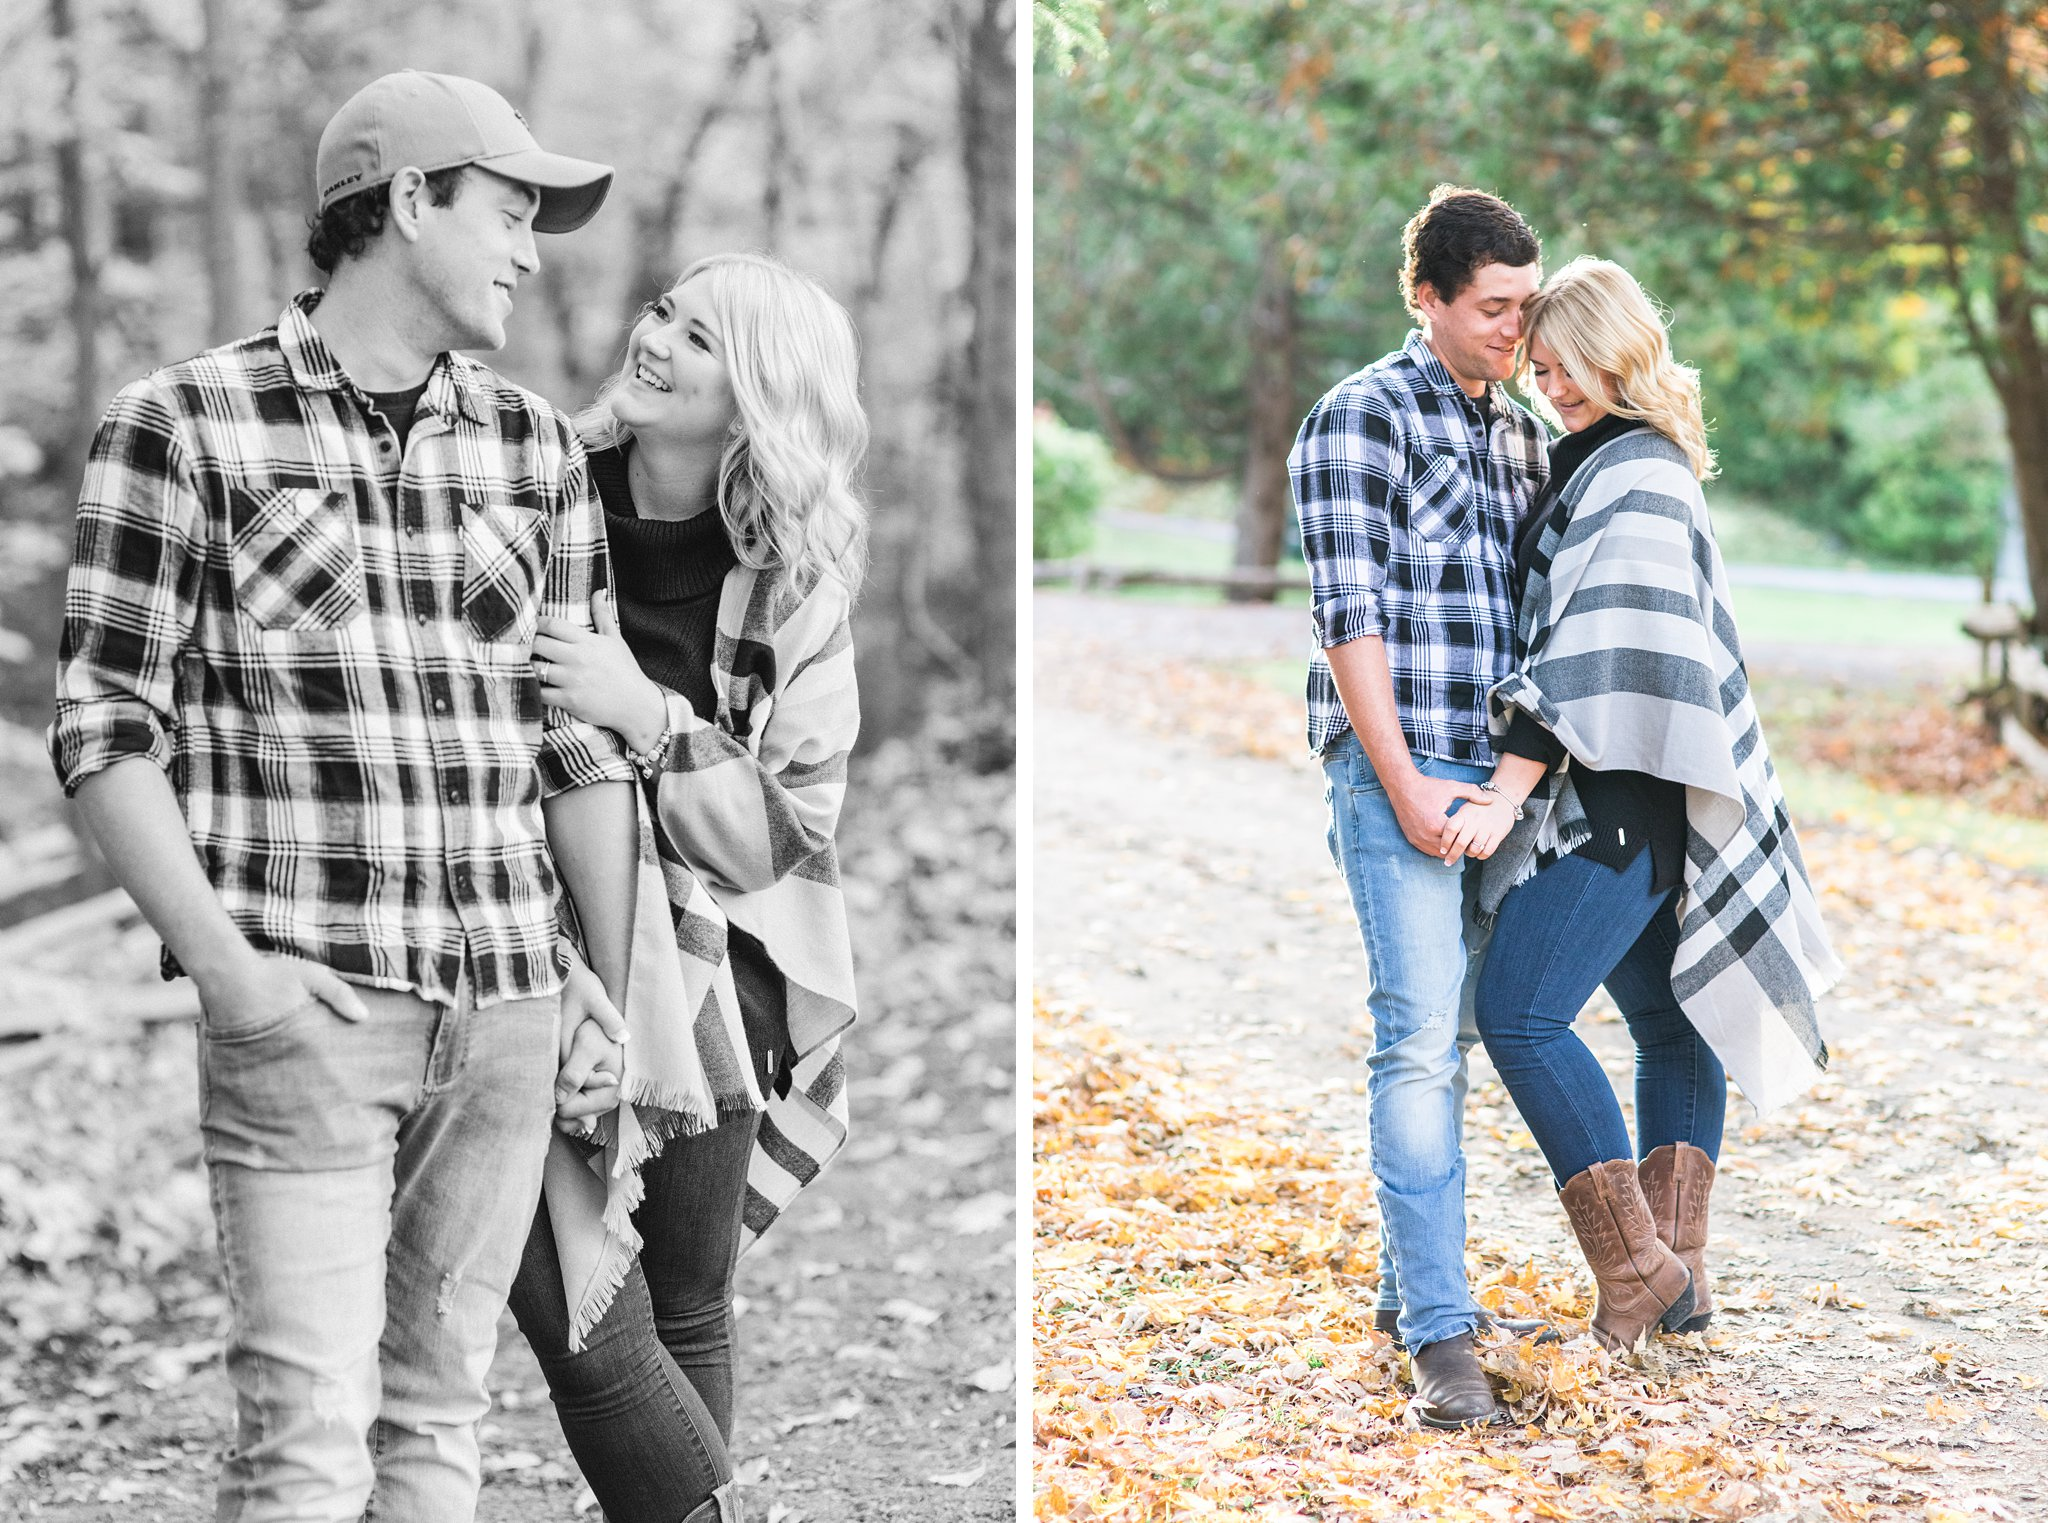 Fall leaves on the ground Old Chelsea Engagement Photos by Amy Pinder Photography